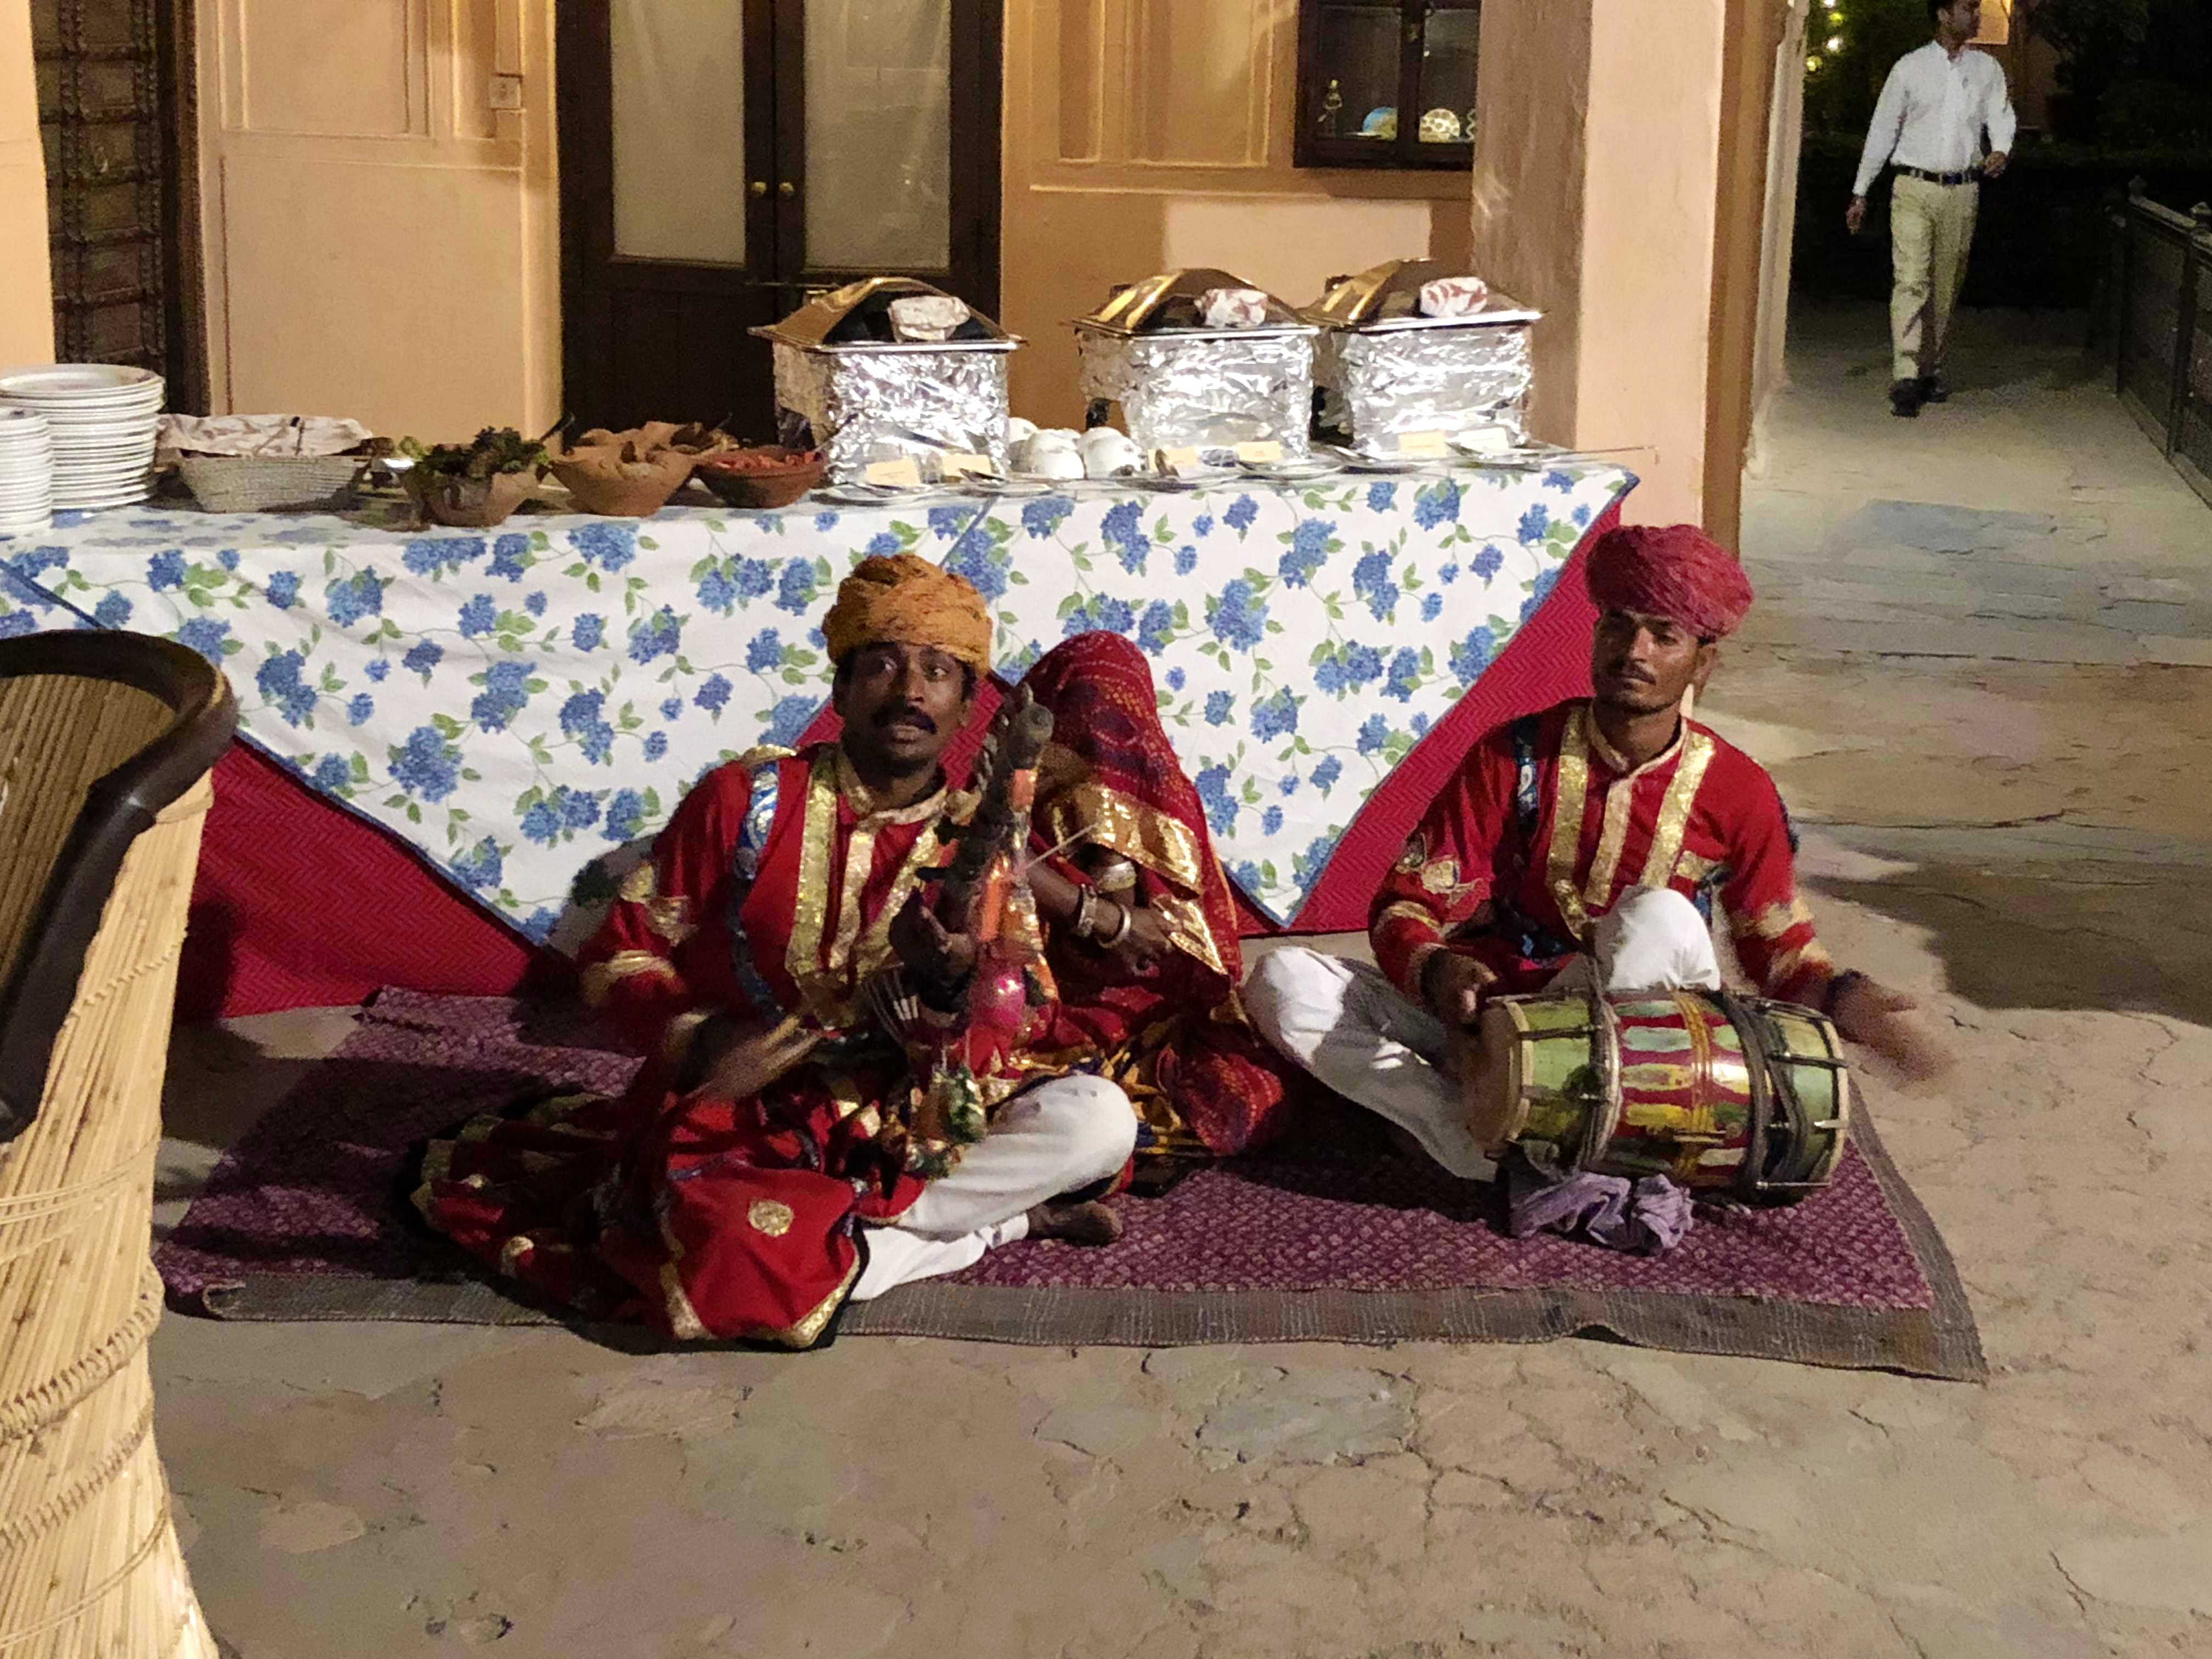 travelogged-3-things-to-do-in-neemrana-cultural-events-image